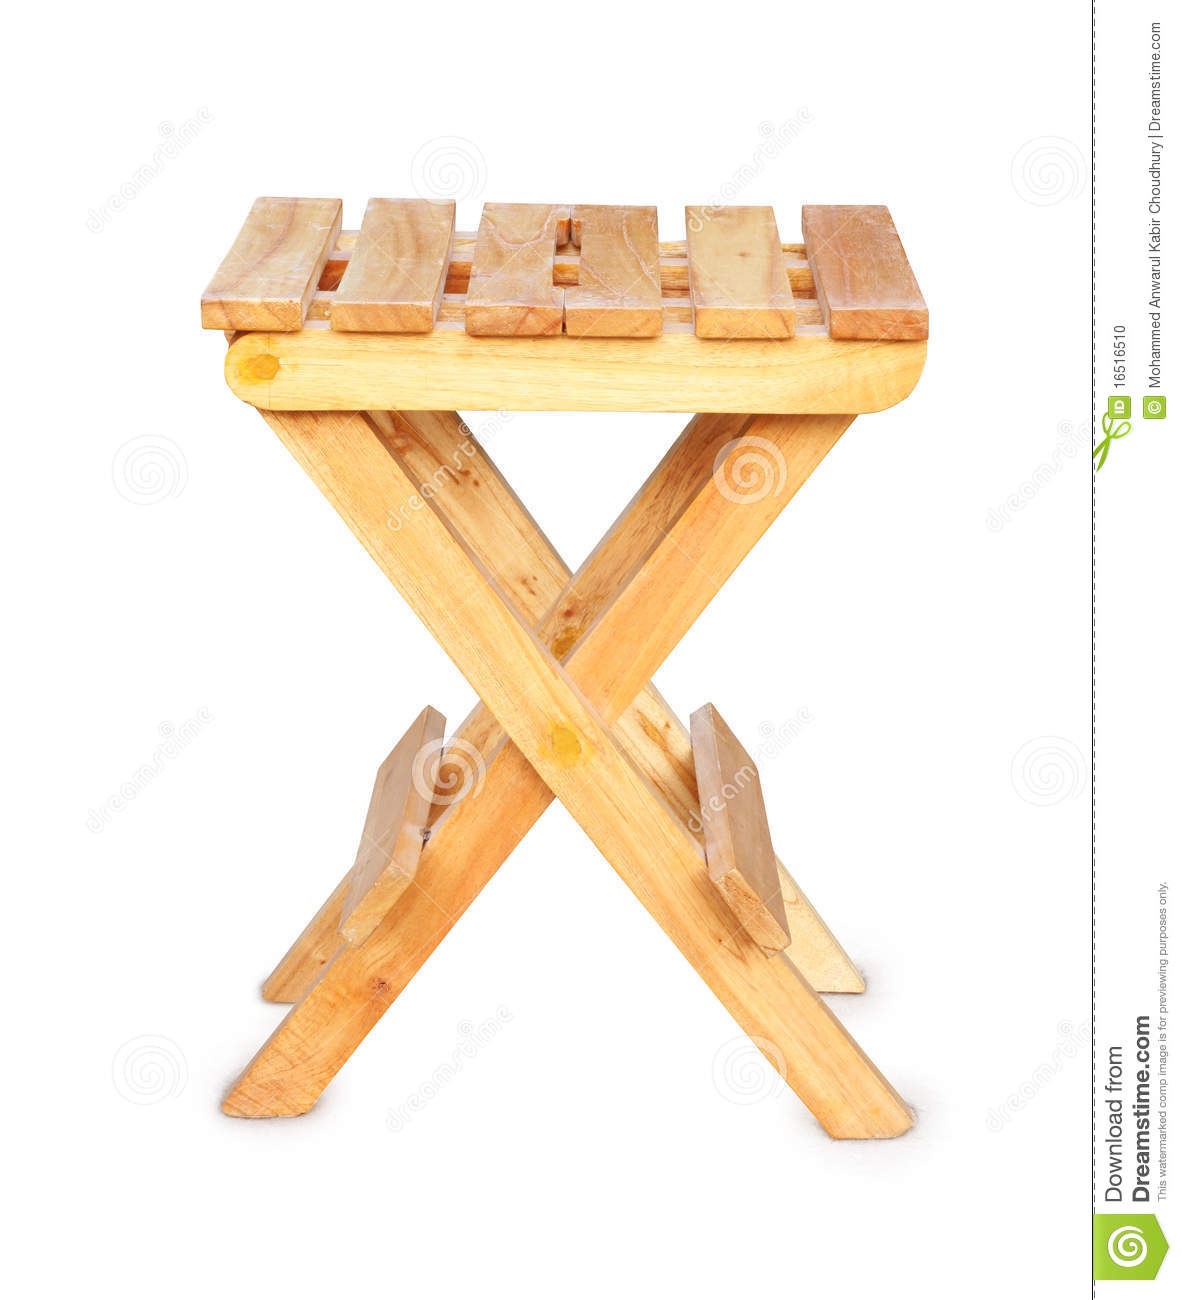 Wooden Folding Stool Stock Photo Image 16516510